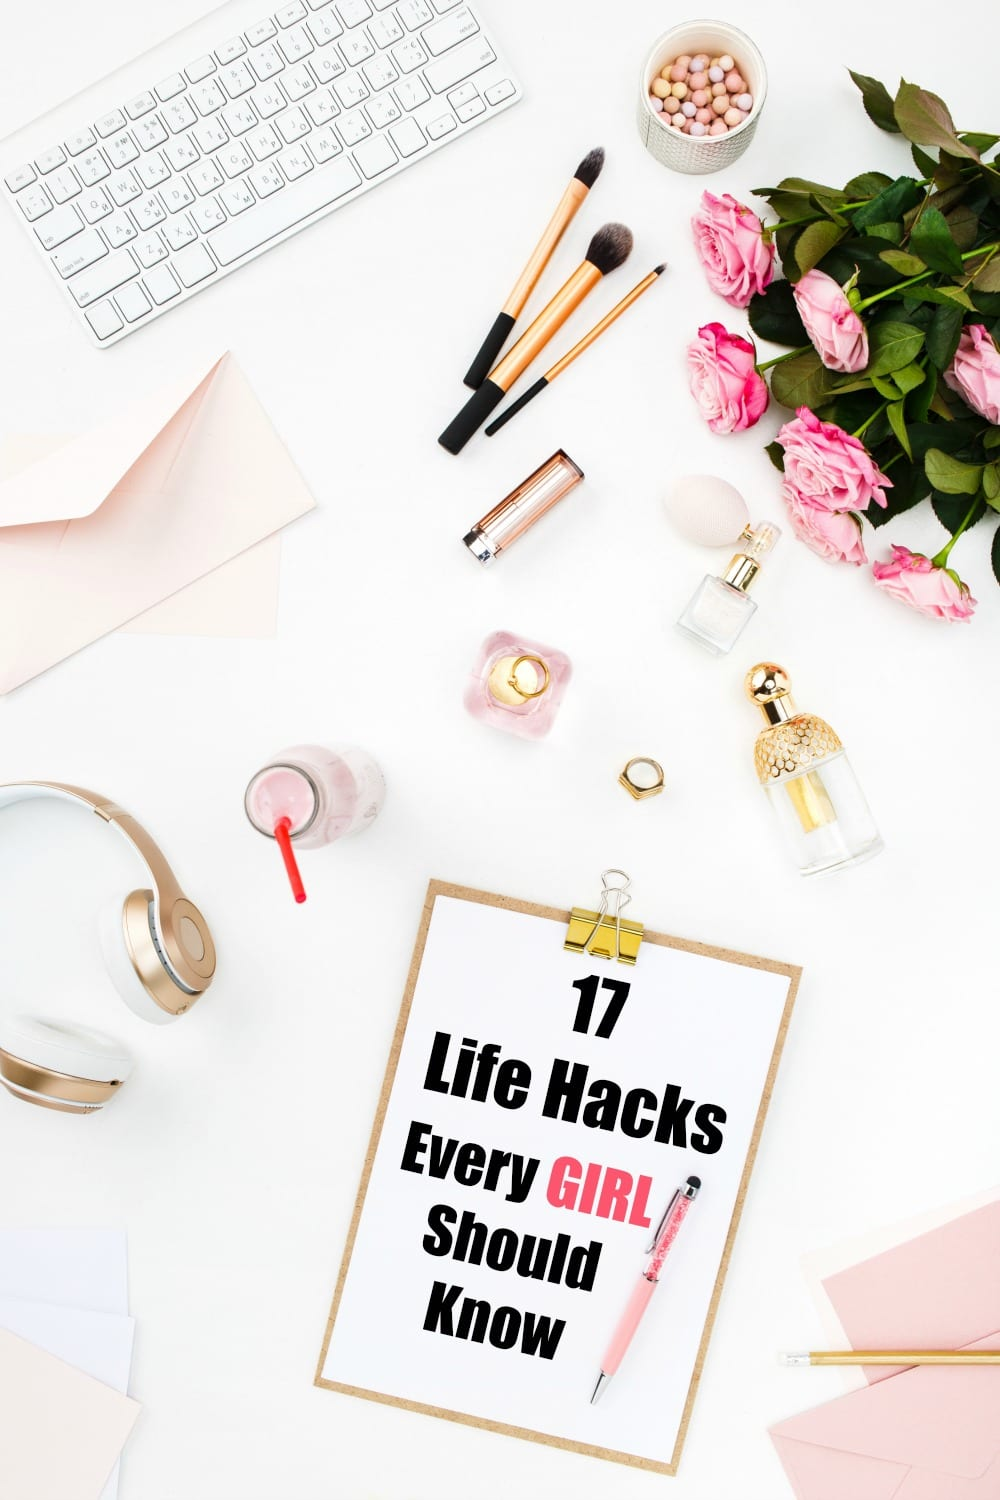 These 17 Life Hacks Every Girl Should Know are ingenious! From beauty tips and hair tricks, to organization ideas for your home, you'll find something here to make life just a tad easier. I carry #1 in my purse!